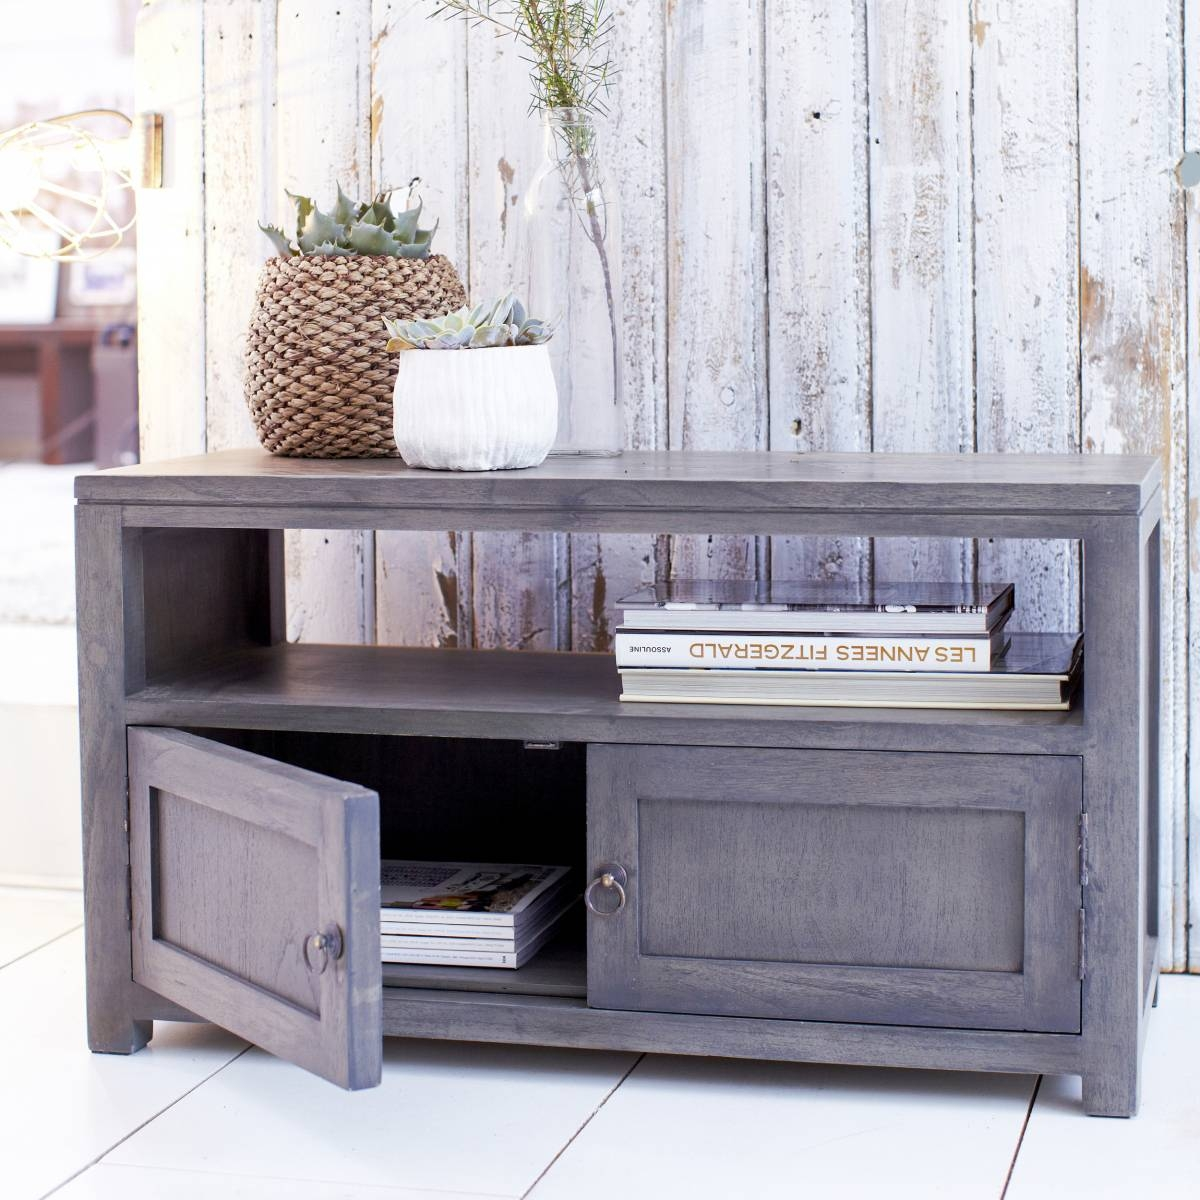 Popular Grey Tv Stand : How To Make Grey Tv Stand – Indoor with Grey Tv Stands (Image 10 of 15)